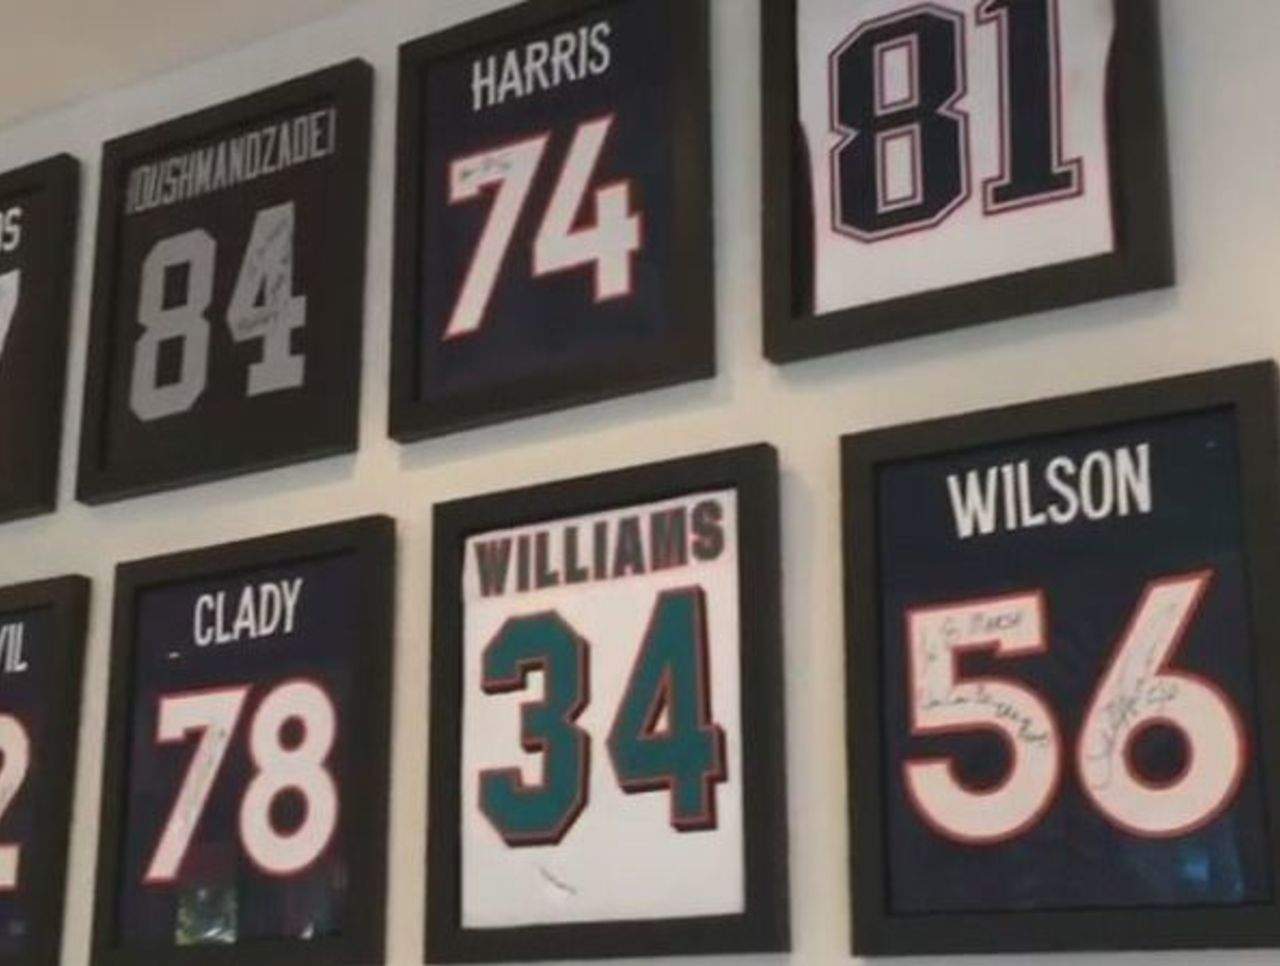 Watch: Brandon Marshall's jersey collection is an NFL fan's dream